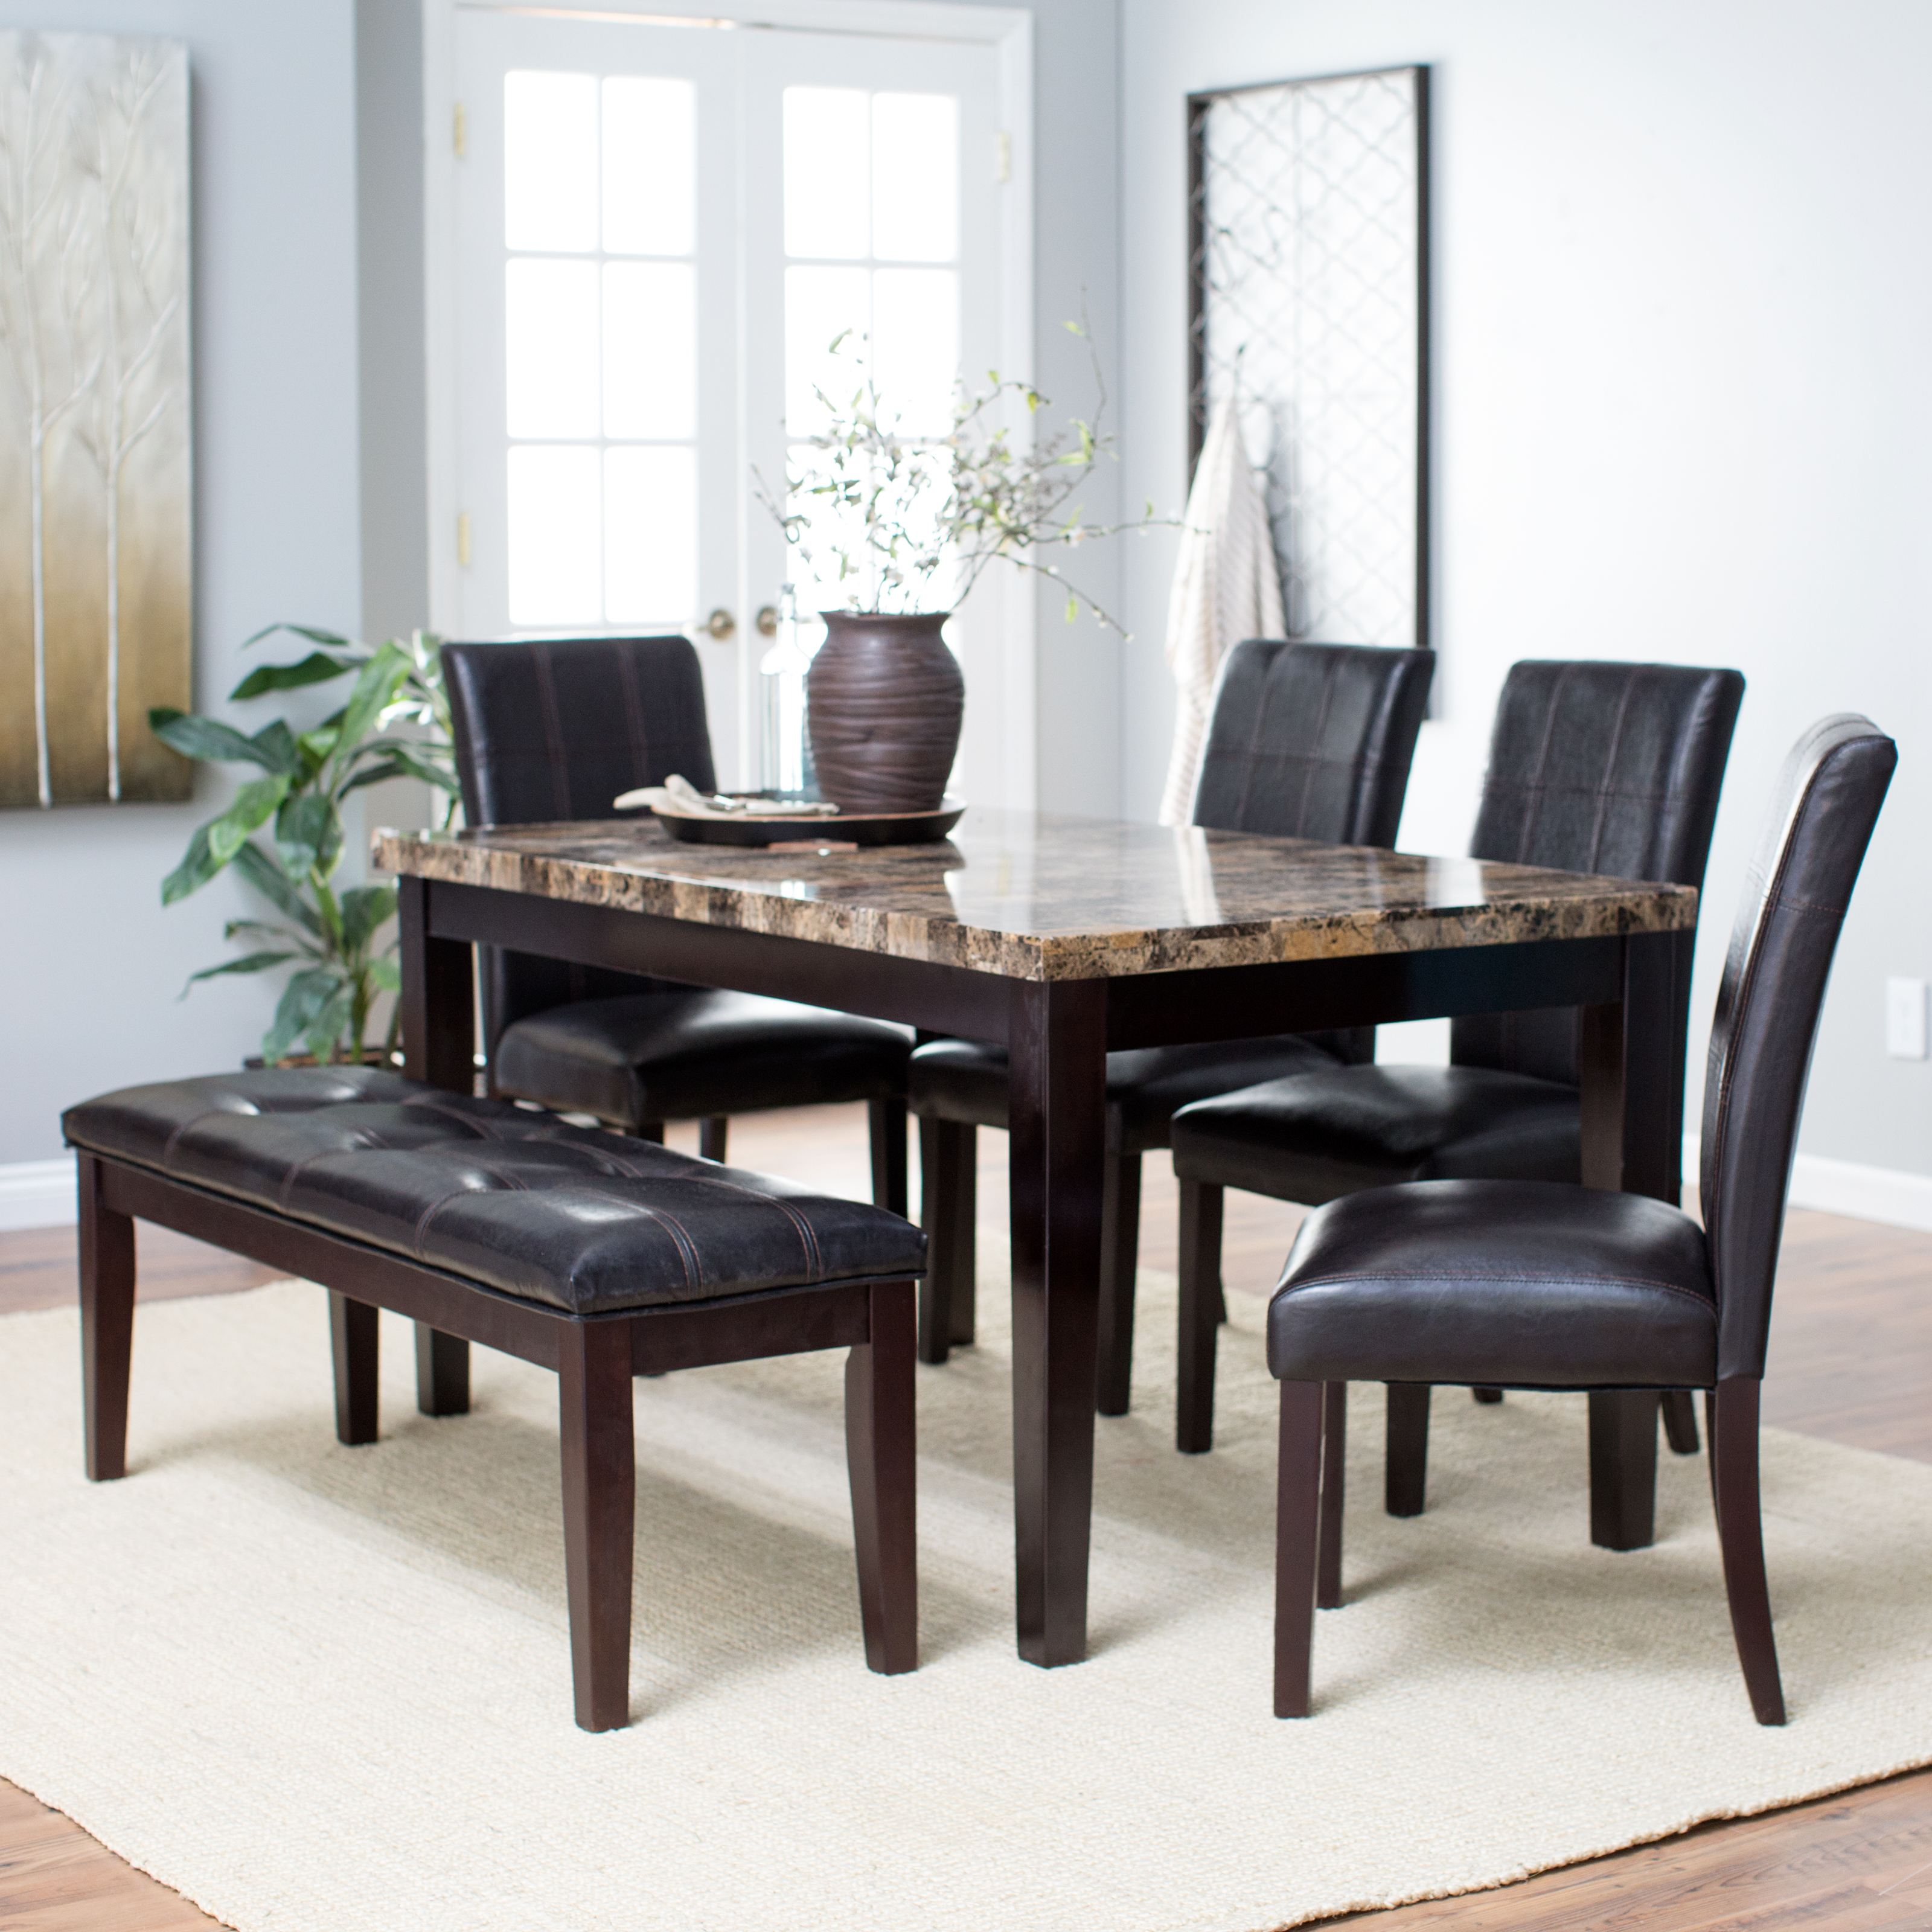 Finley home palazzo 6 piece dining set with bench dining for High dinner table set